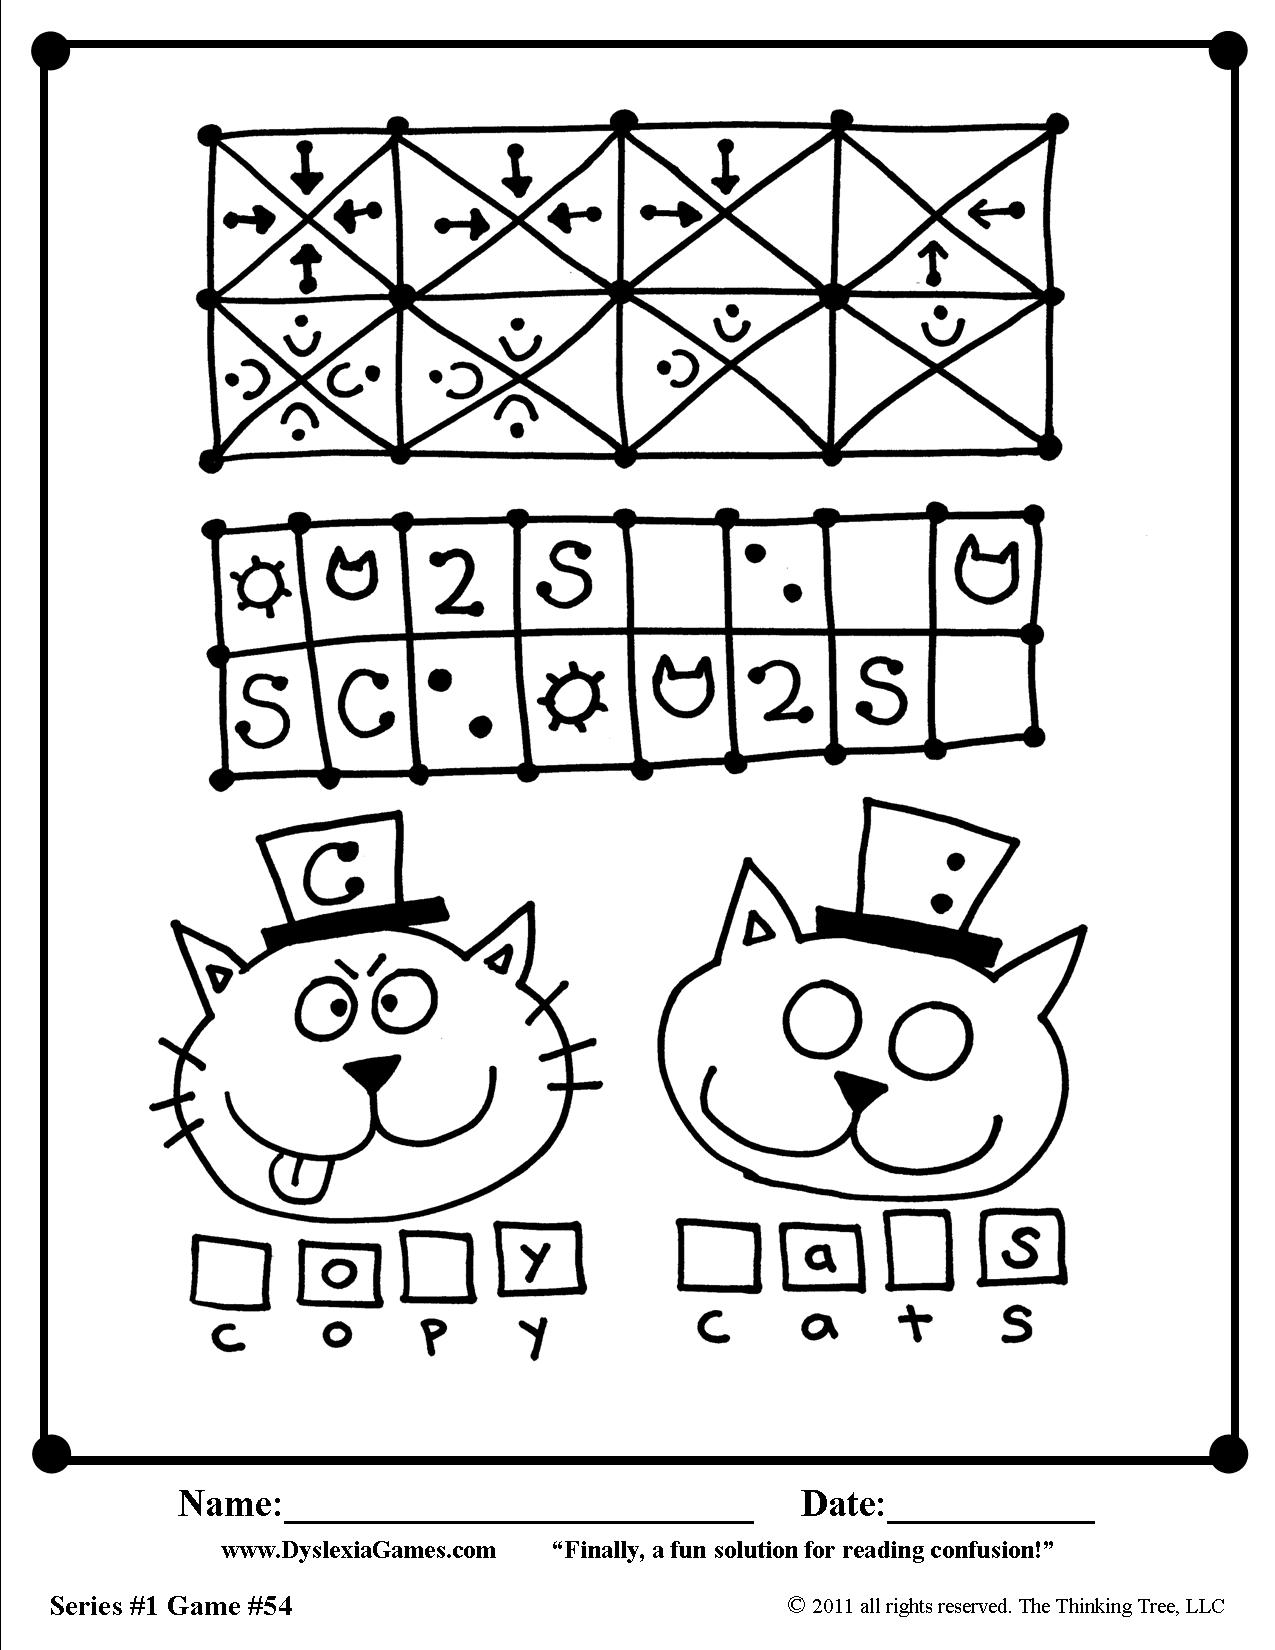 5 Free Dyslexia Games Worksheets For Letter Reversals D B P Amp Q